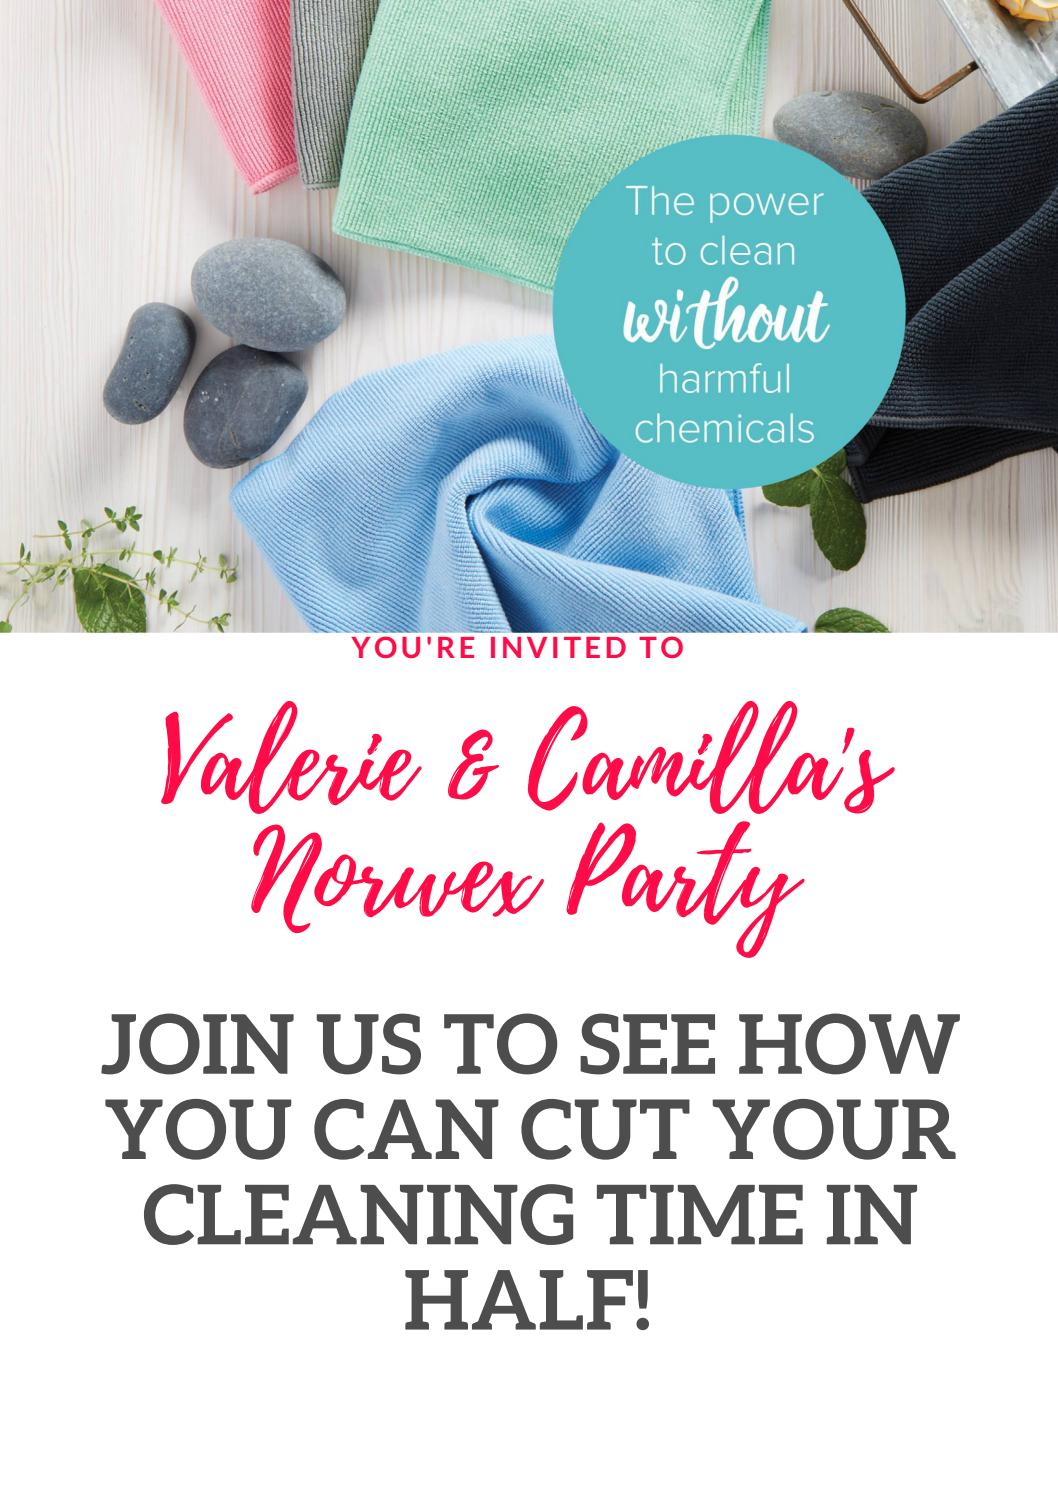 Valerie & Camilla\'s norwex party by gmford - issuu